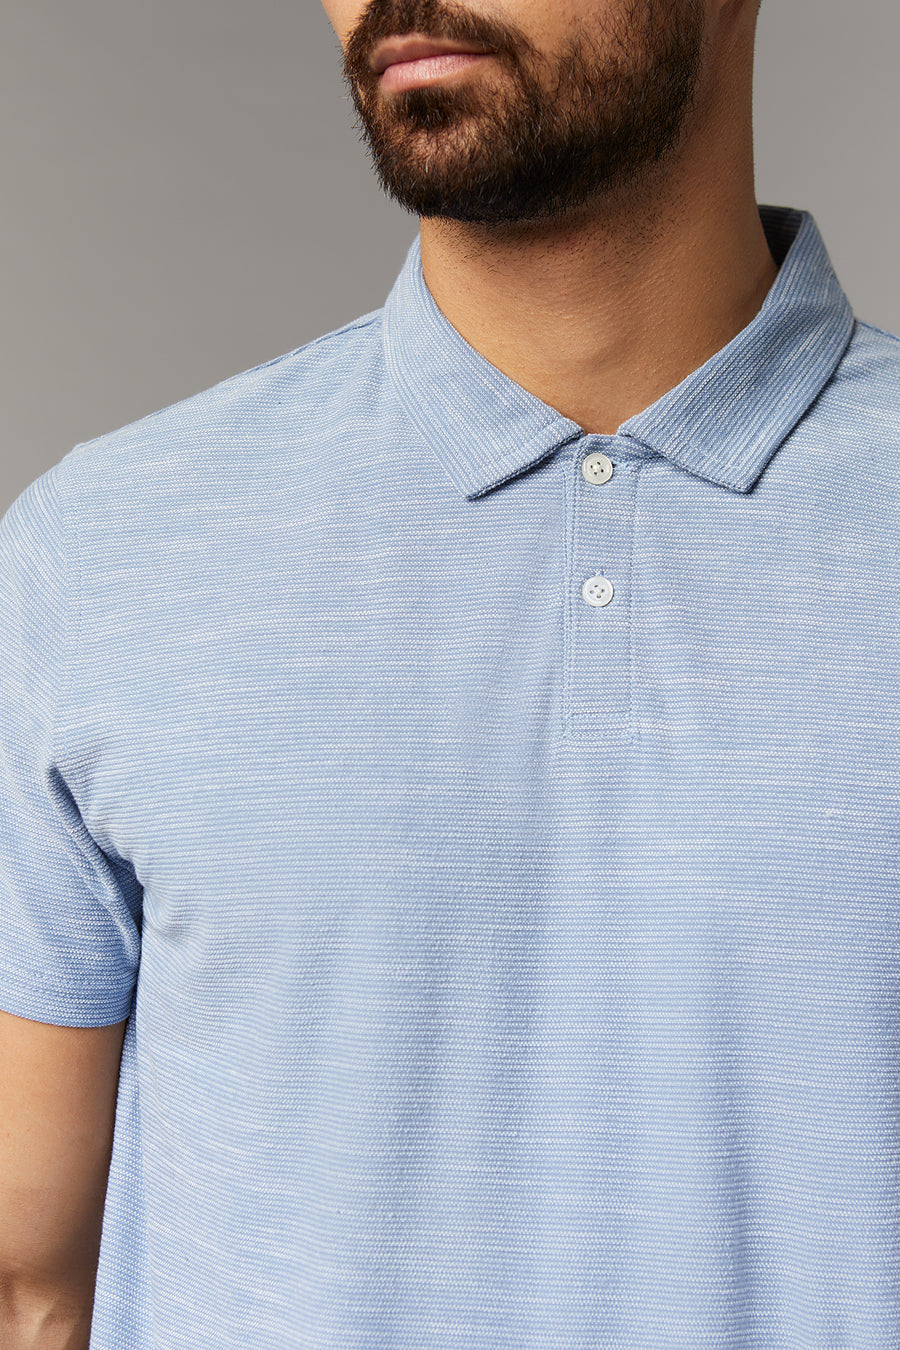 Mike LT Blue Short Sleeve Knit Polo